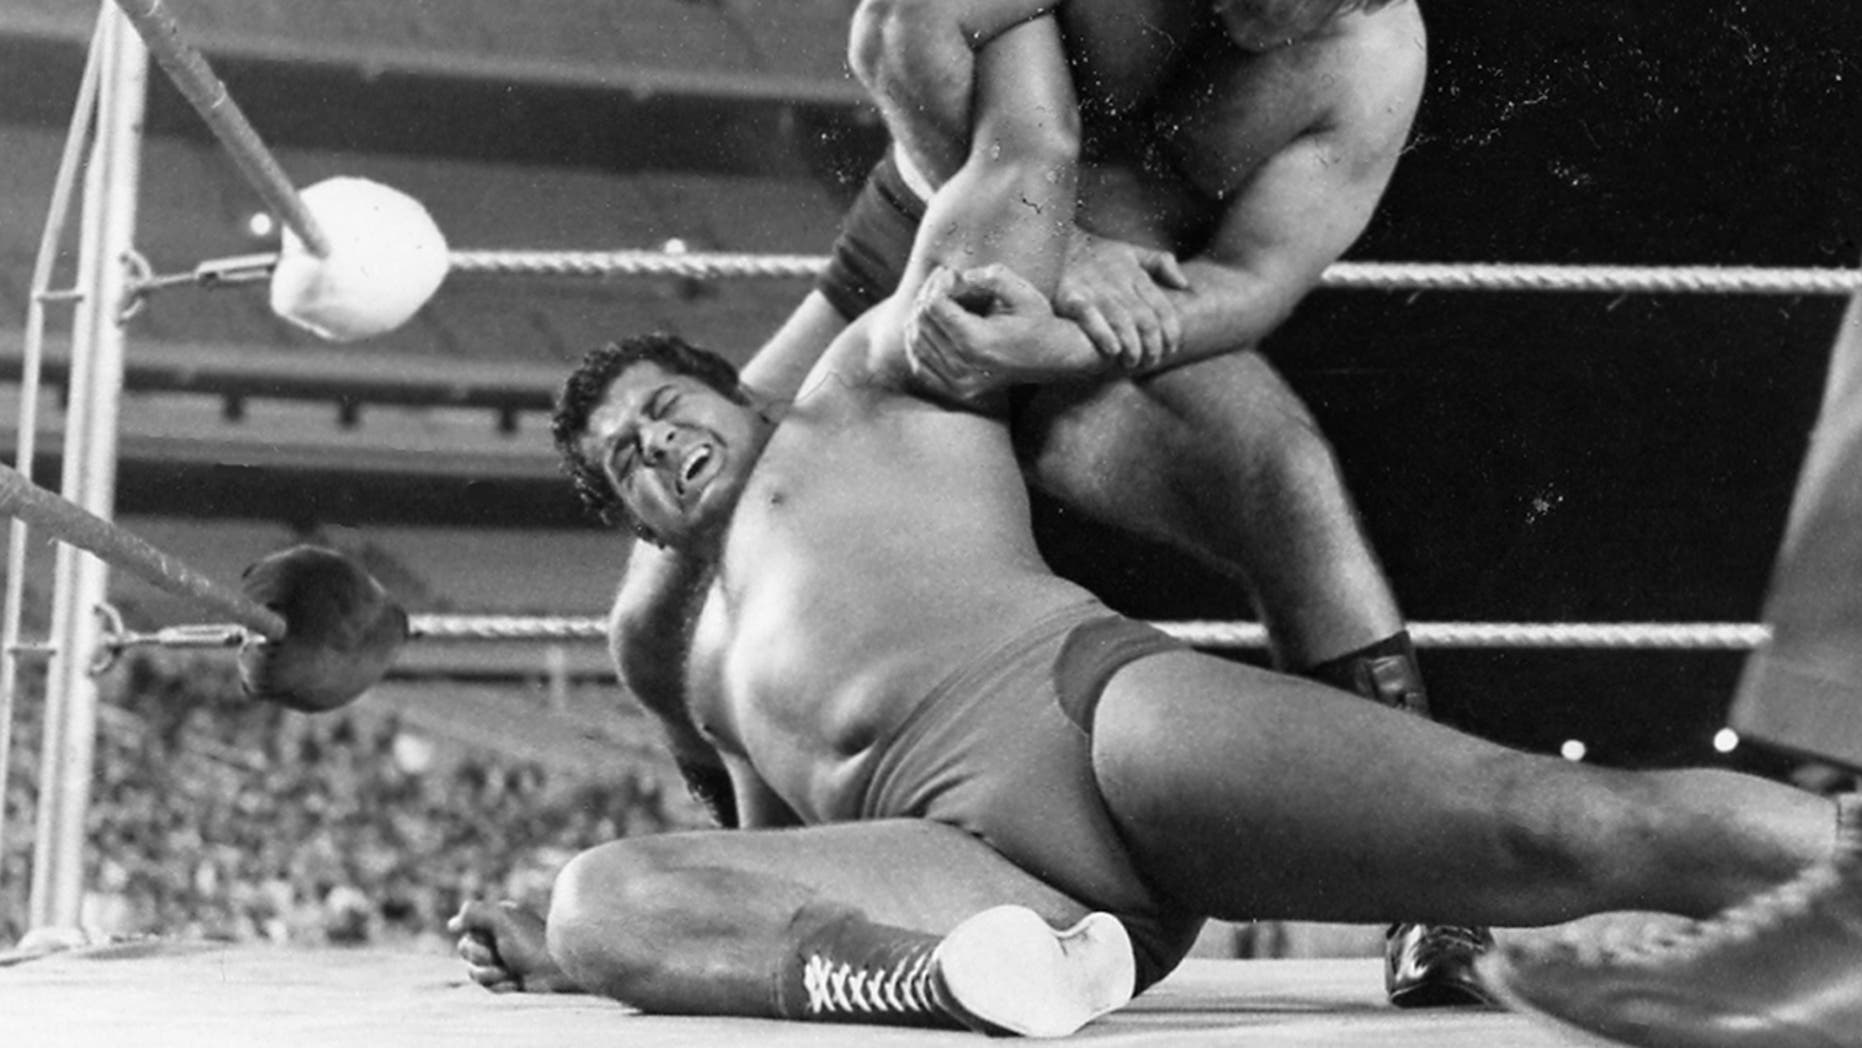 "Former WWF champion Pedro Morales dies at the age of 76. Bruno Sammartino and Pedro Morales fight on September 30, 1<div class=""e3lan e3lan-in-post1""><script async src=""//pagead2.googlesyndication.com/pagead/js/adsbygoogle.js""></script>